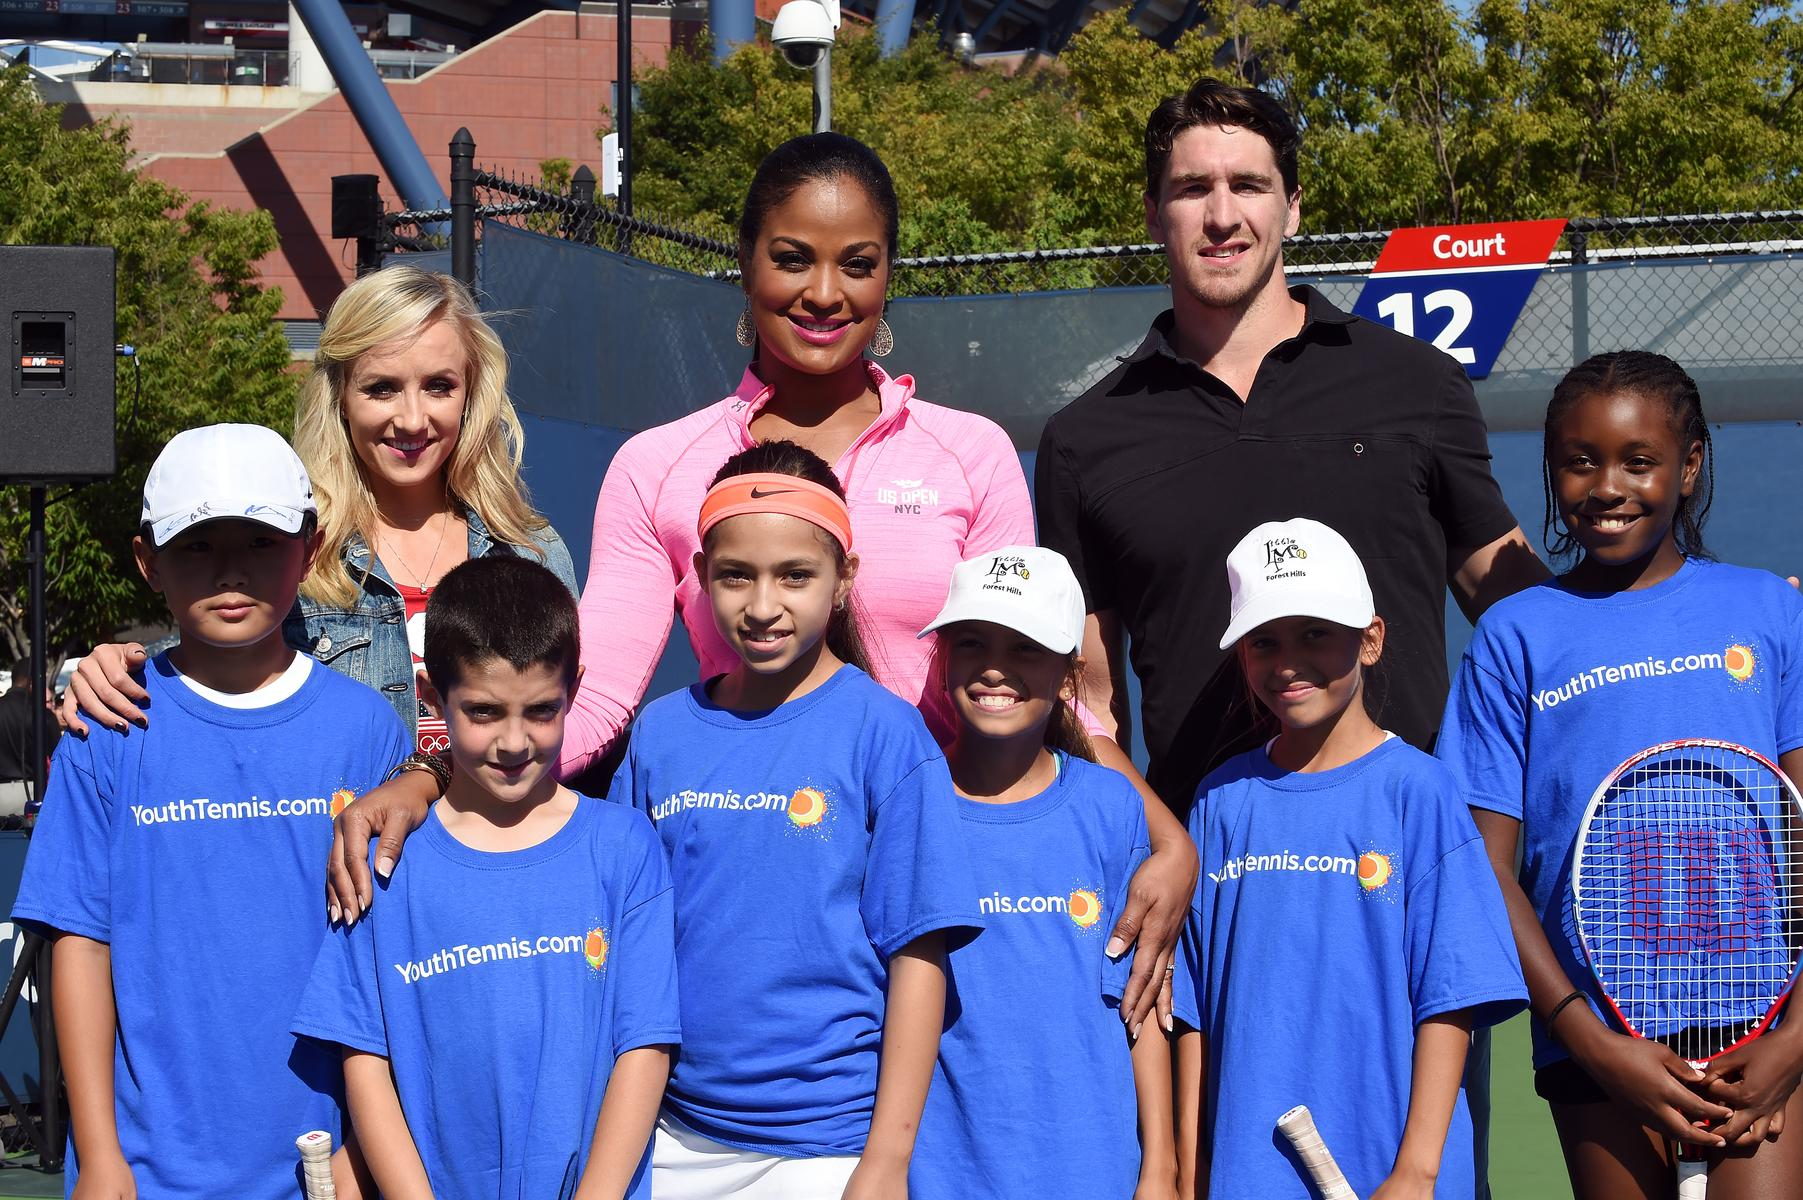 Six kids with tennis players